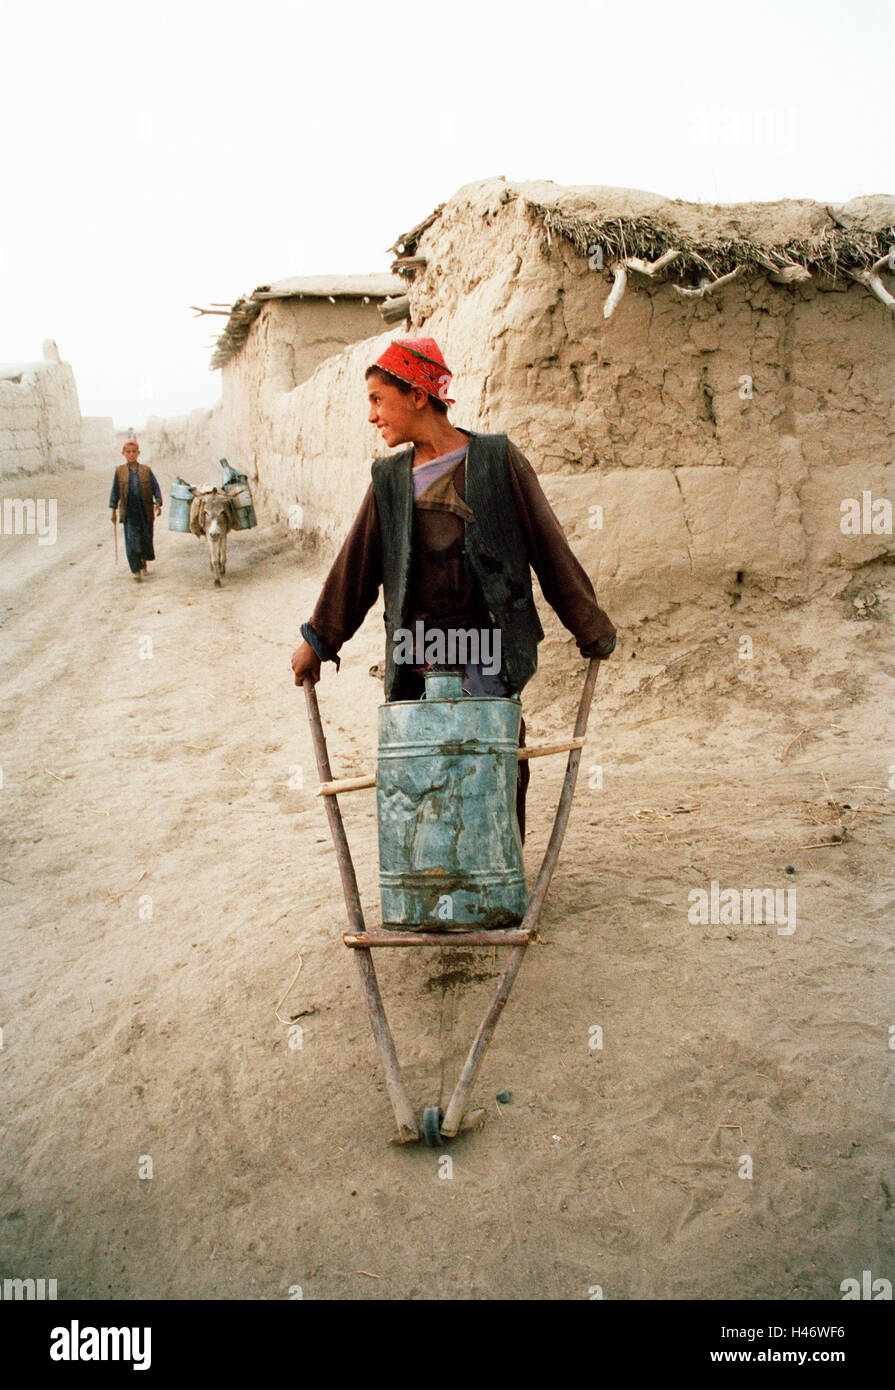 Afghanistan, boy, smile, carriage, barrel, - Stock Image